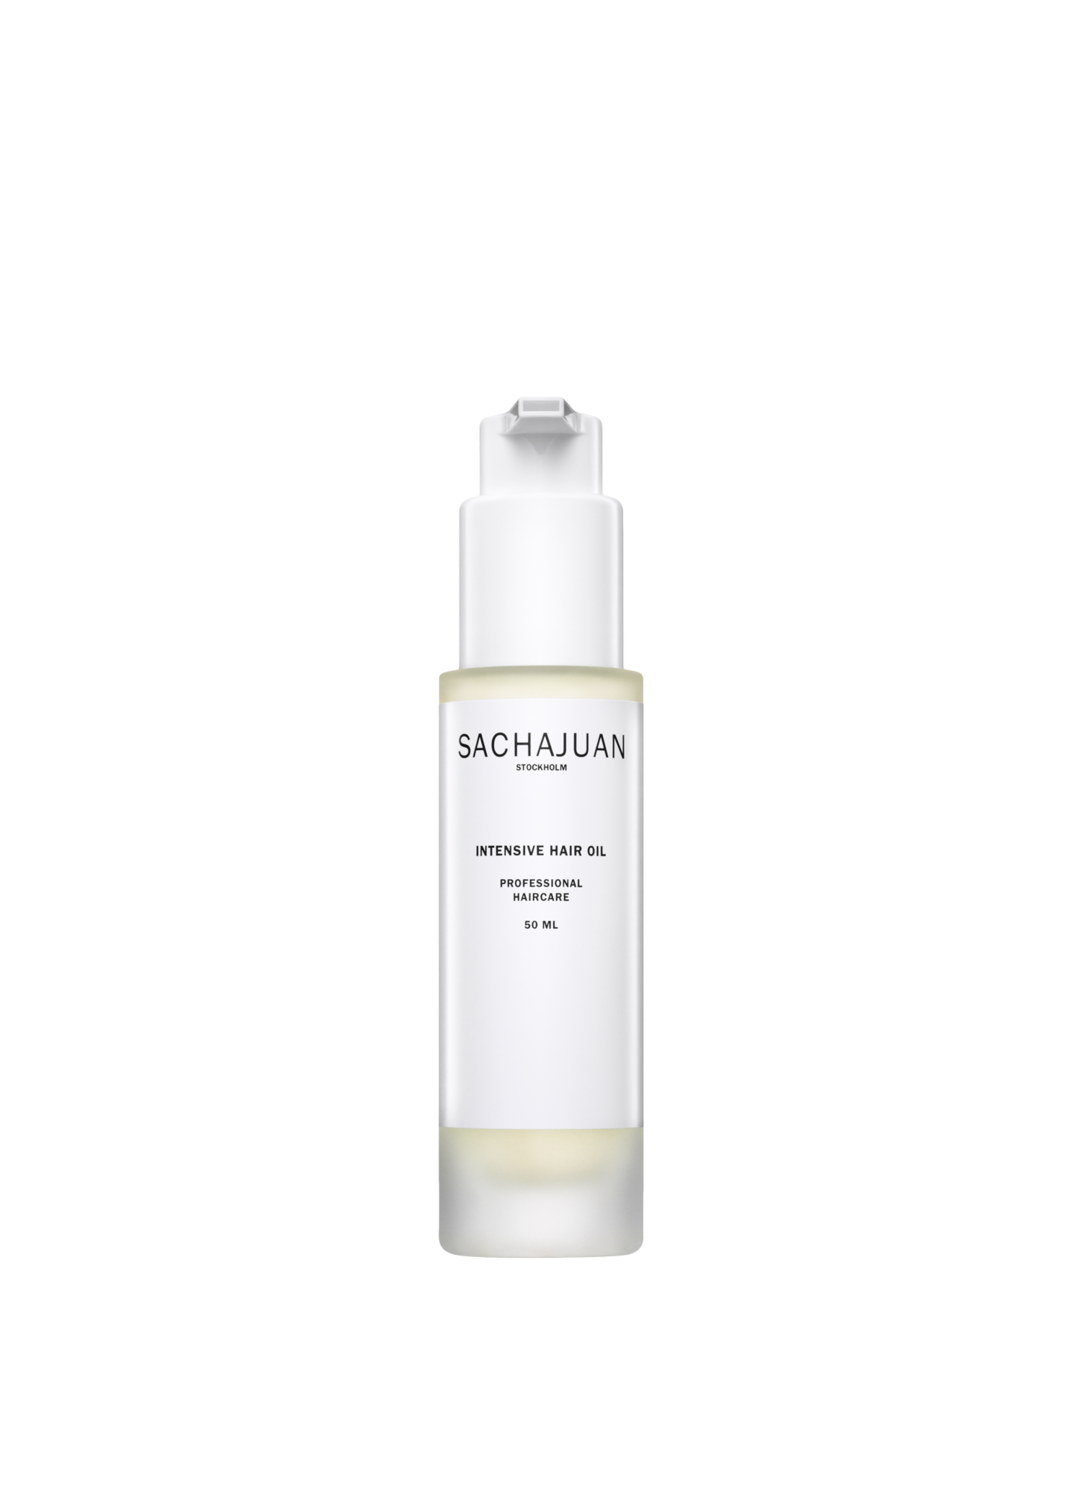 sachajuan | intensive hair oil - KISS AND MAKEUP